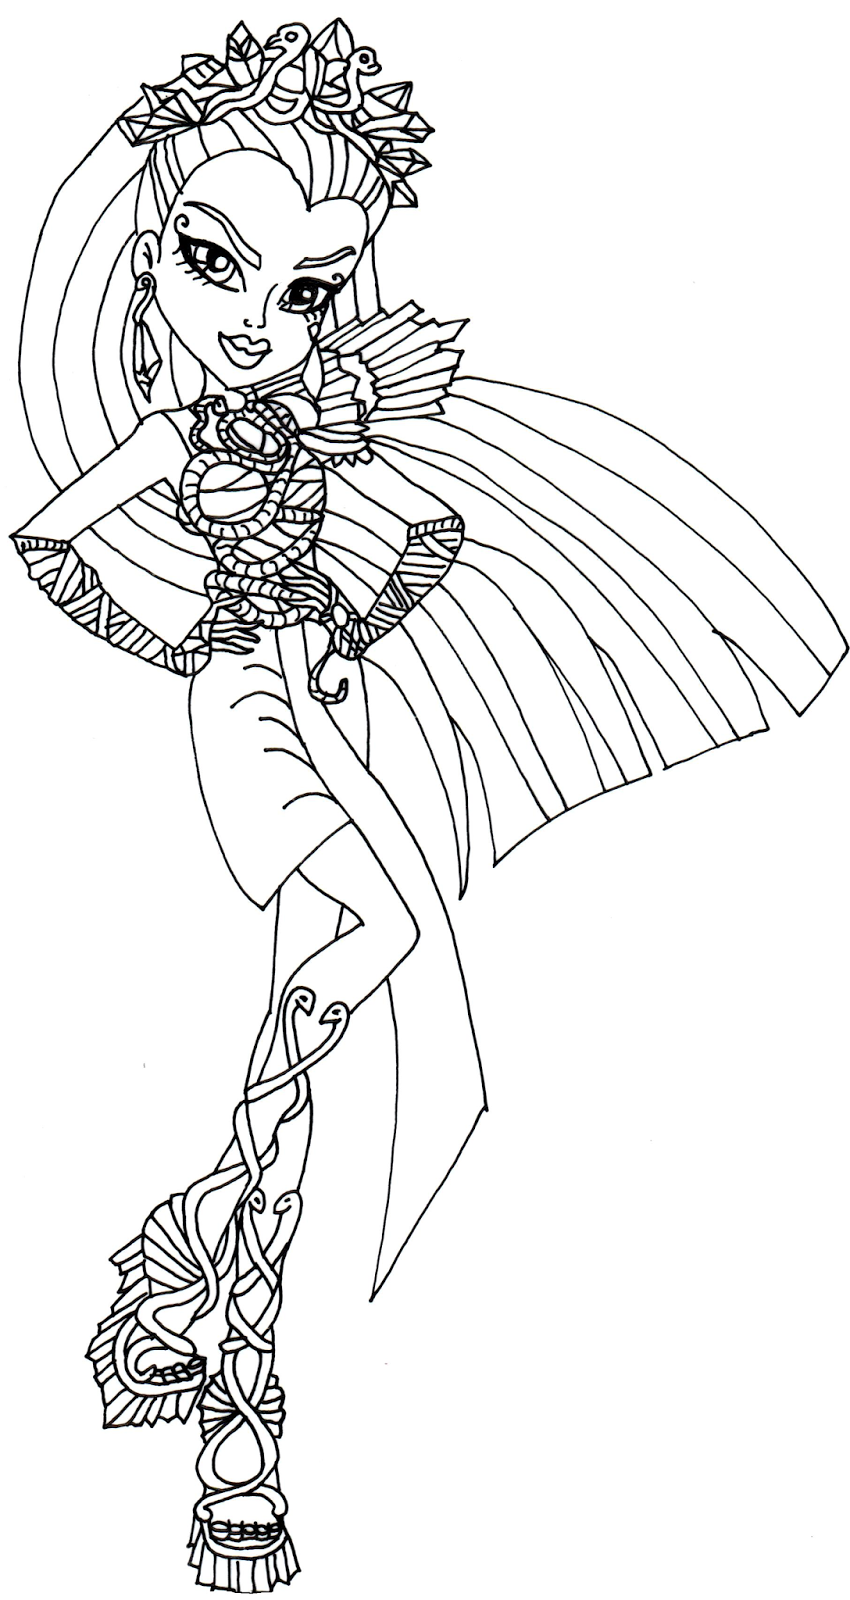 Free printable monster high coloring pages nefera de nile for Print monster high coloring pages